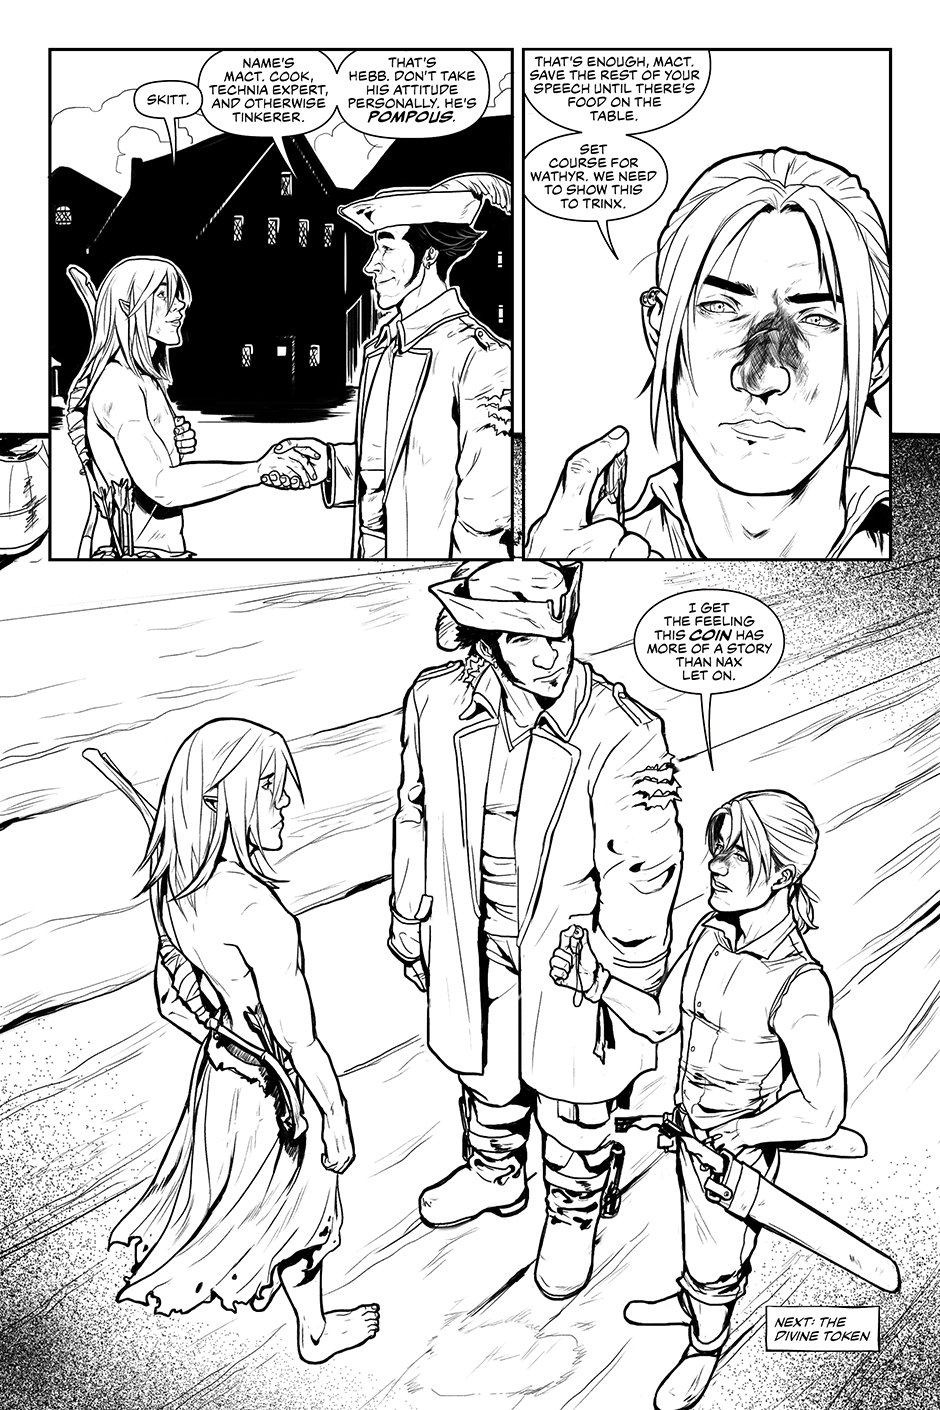 1.40 - End of Issue One